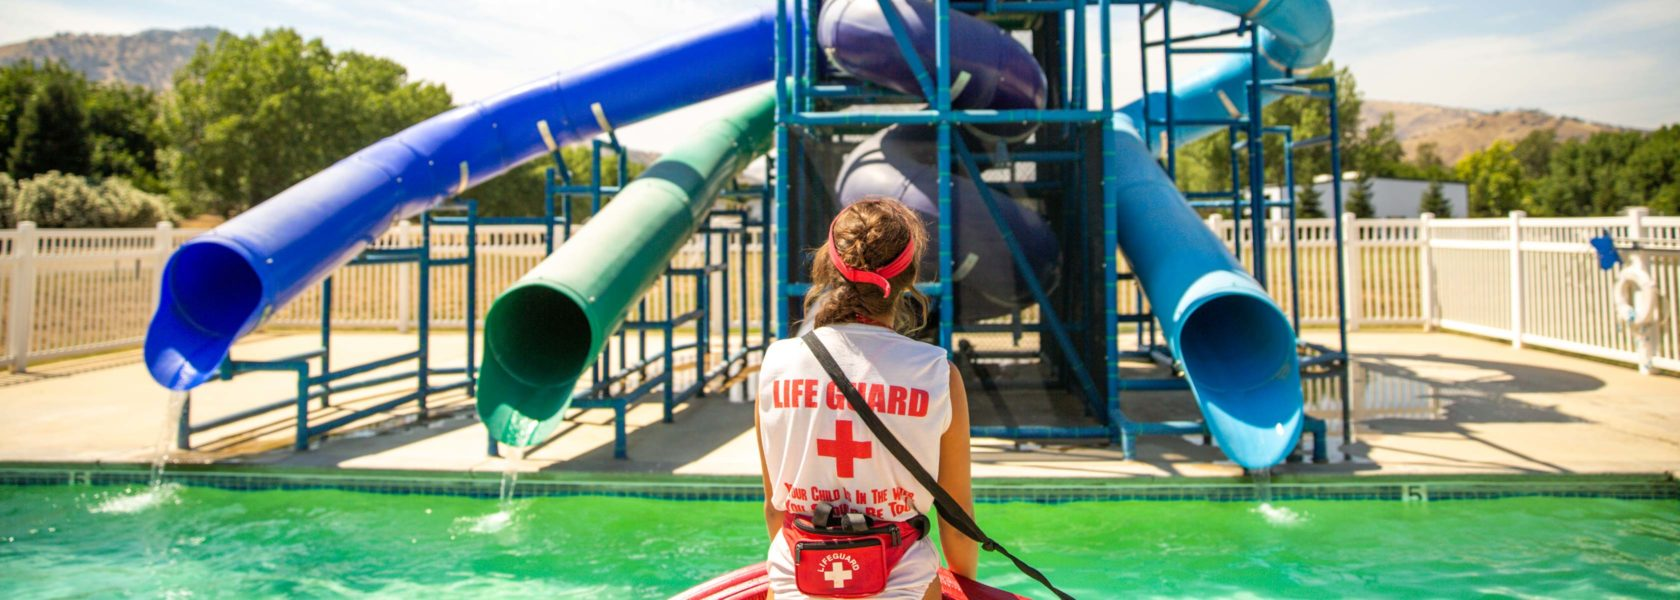 A lifeguard standing by the pool and water slide.